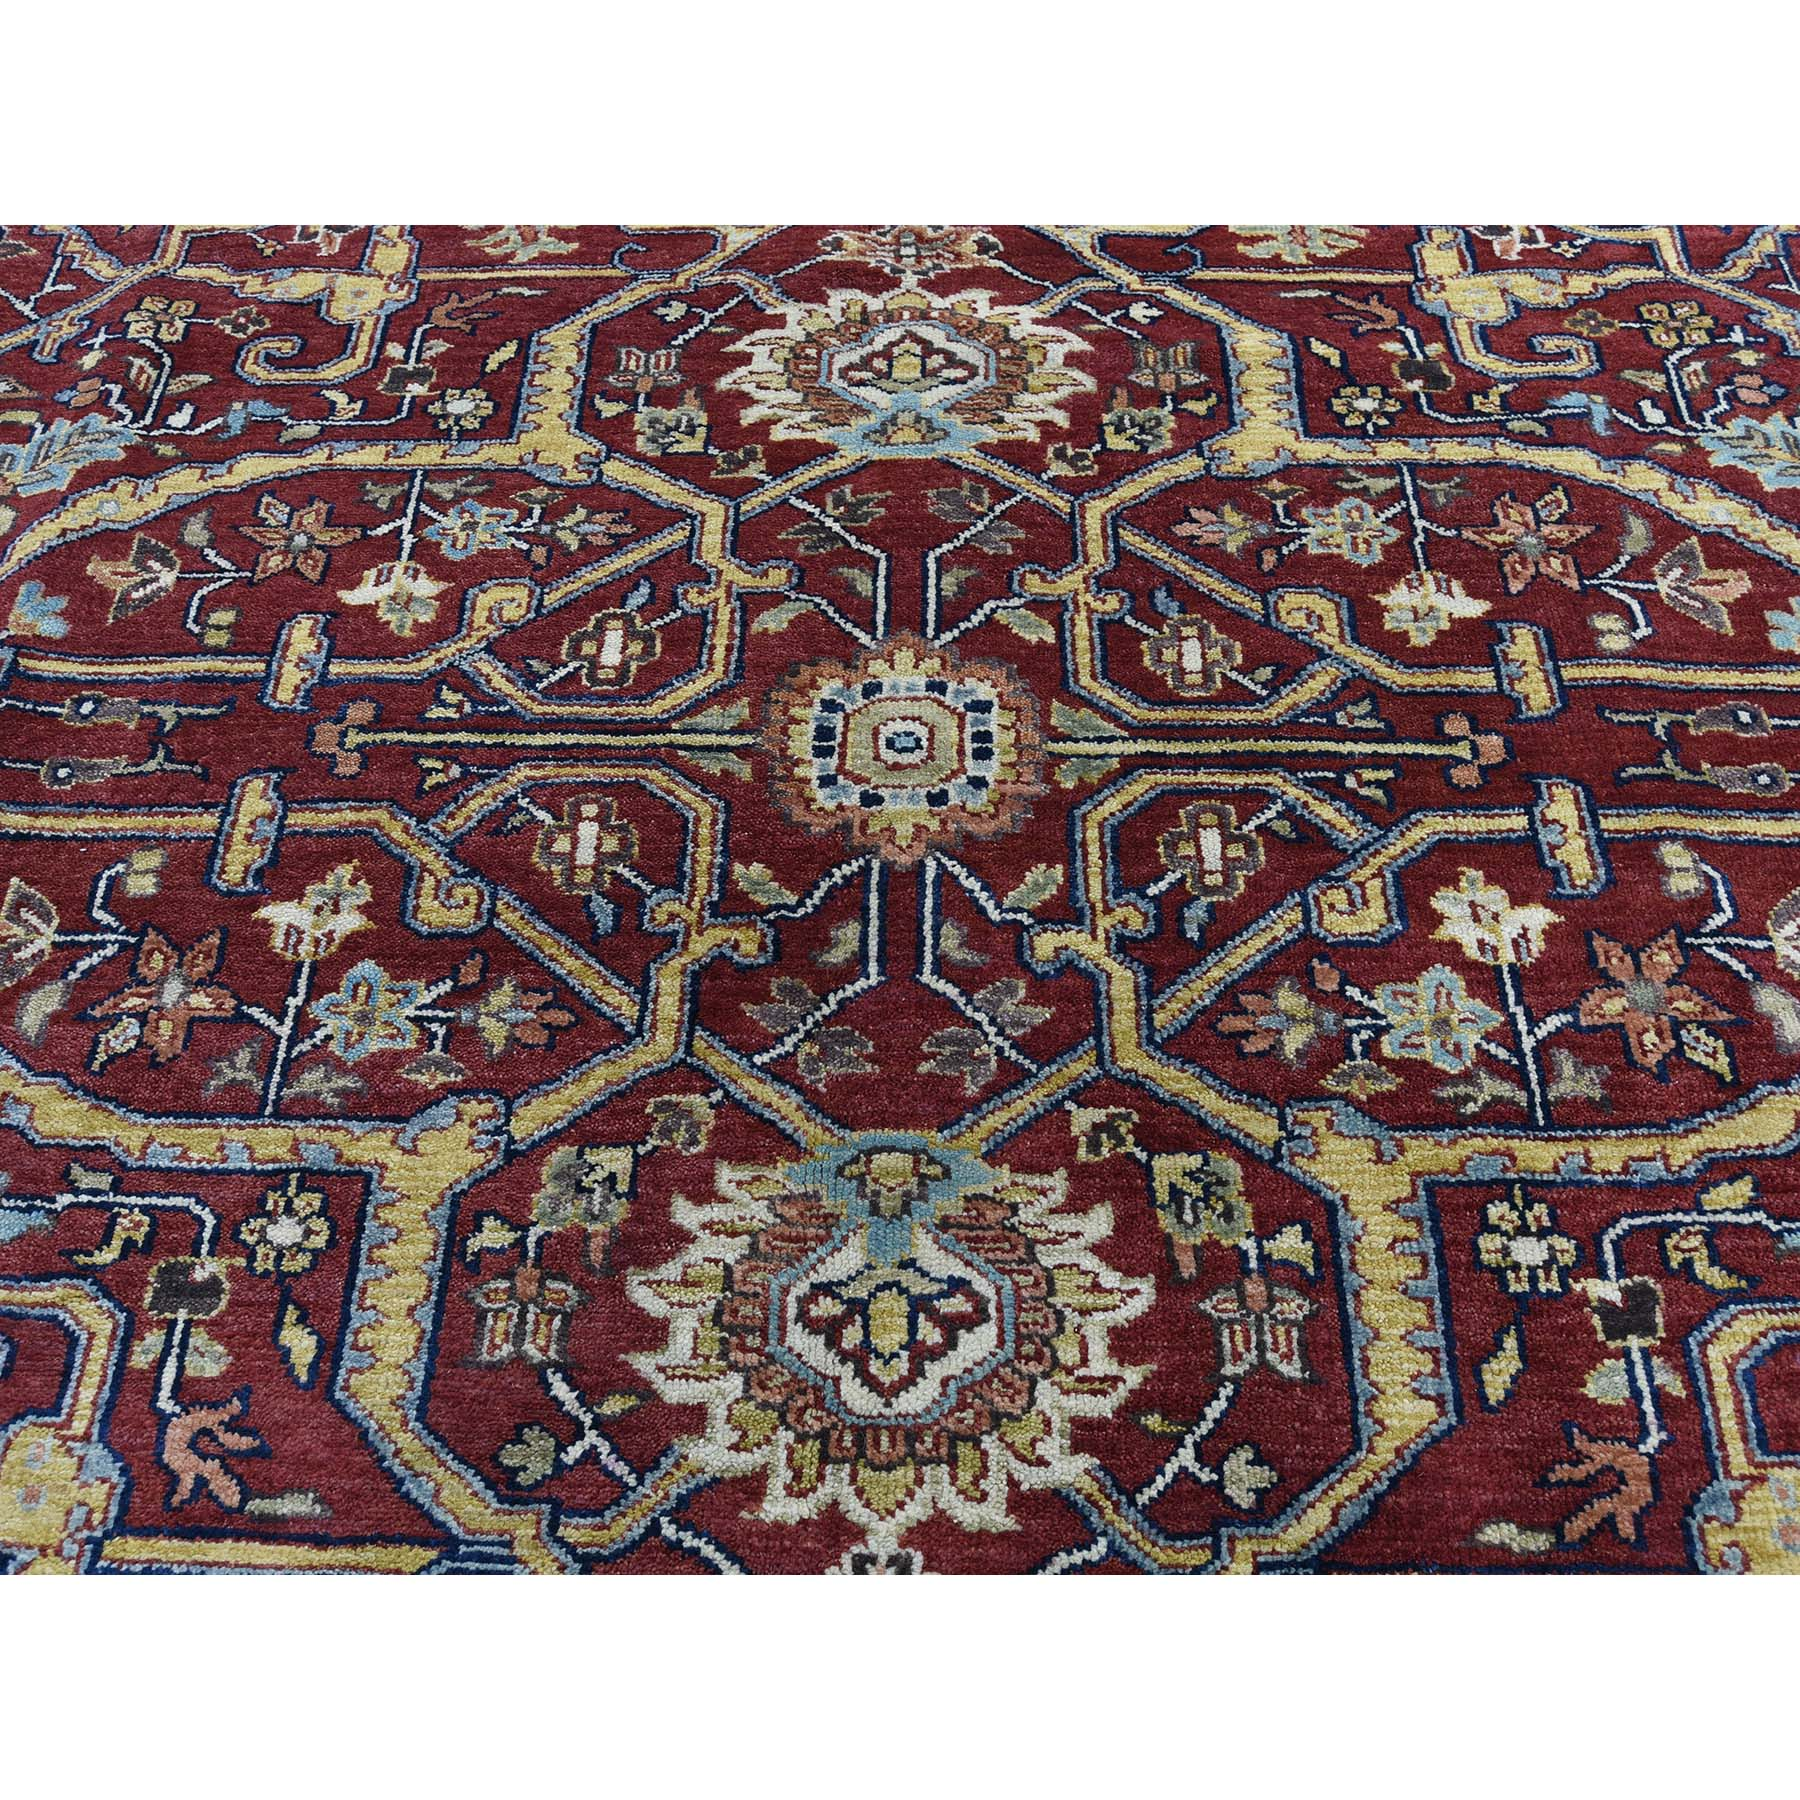 "8'x10'3"" Red Heriz Revival Pure Wool Hand-Knotted Oriental Rug"